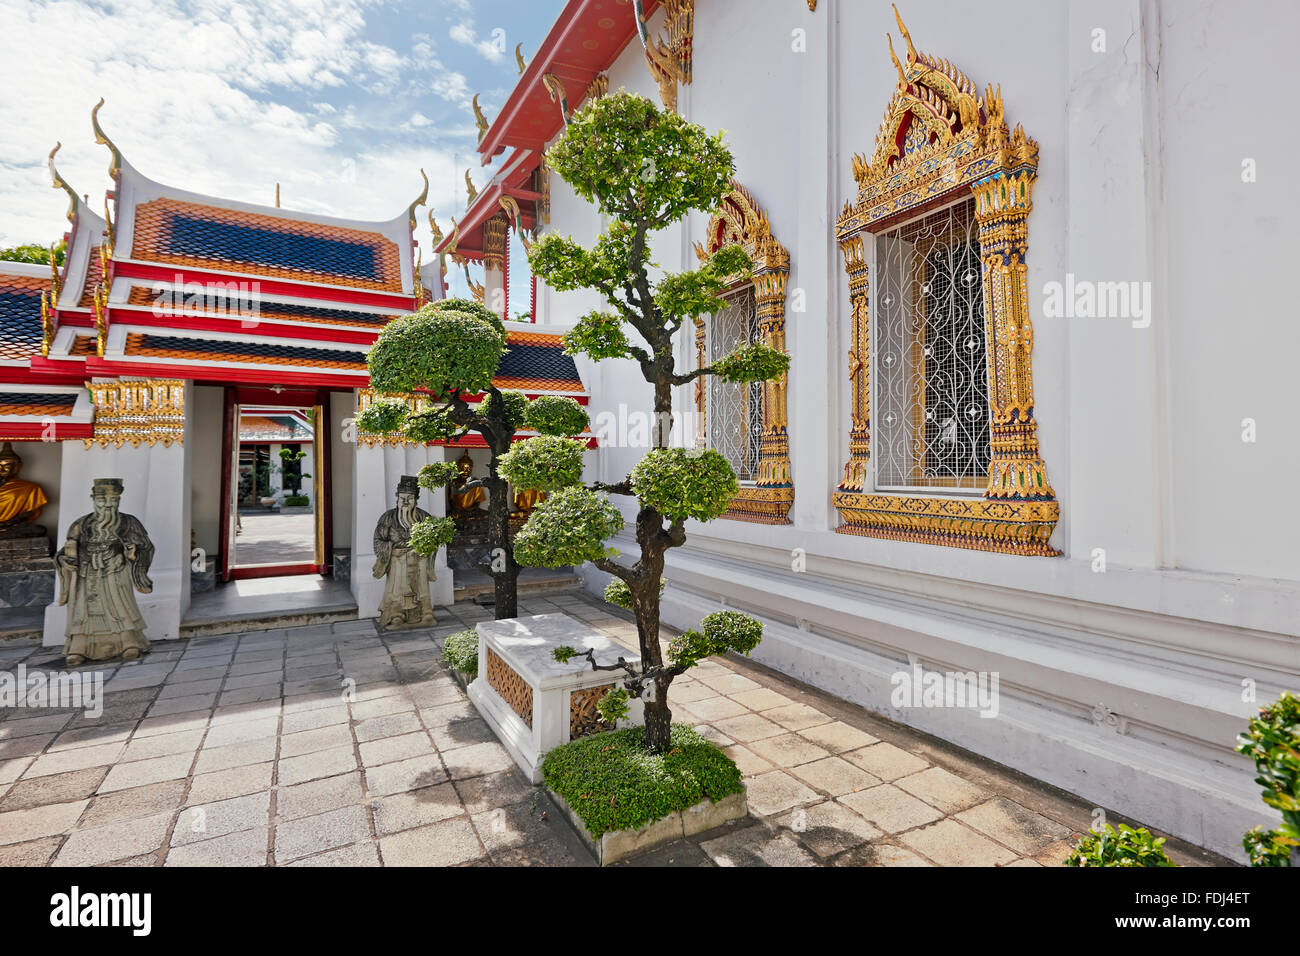 Bonsai trees growing in one of the courtyards of Wat Pho Temple. Bangkok, Thailand. - Stock Image